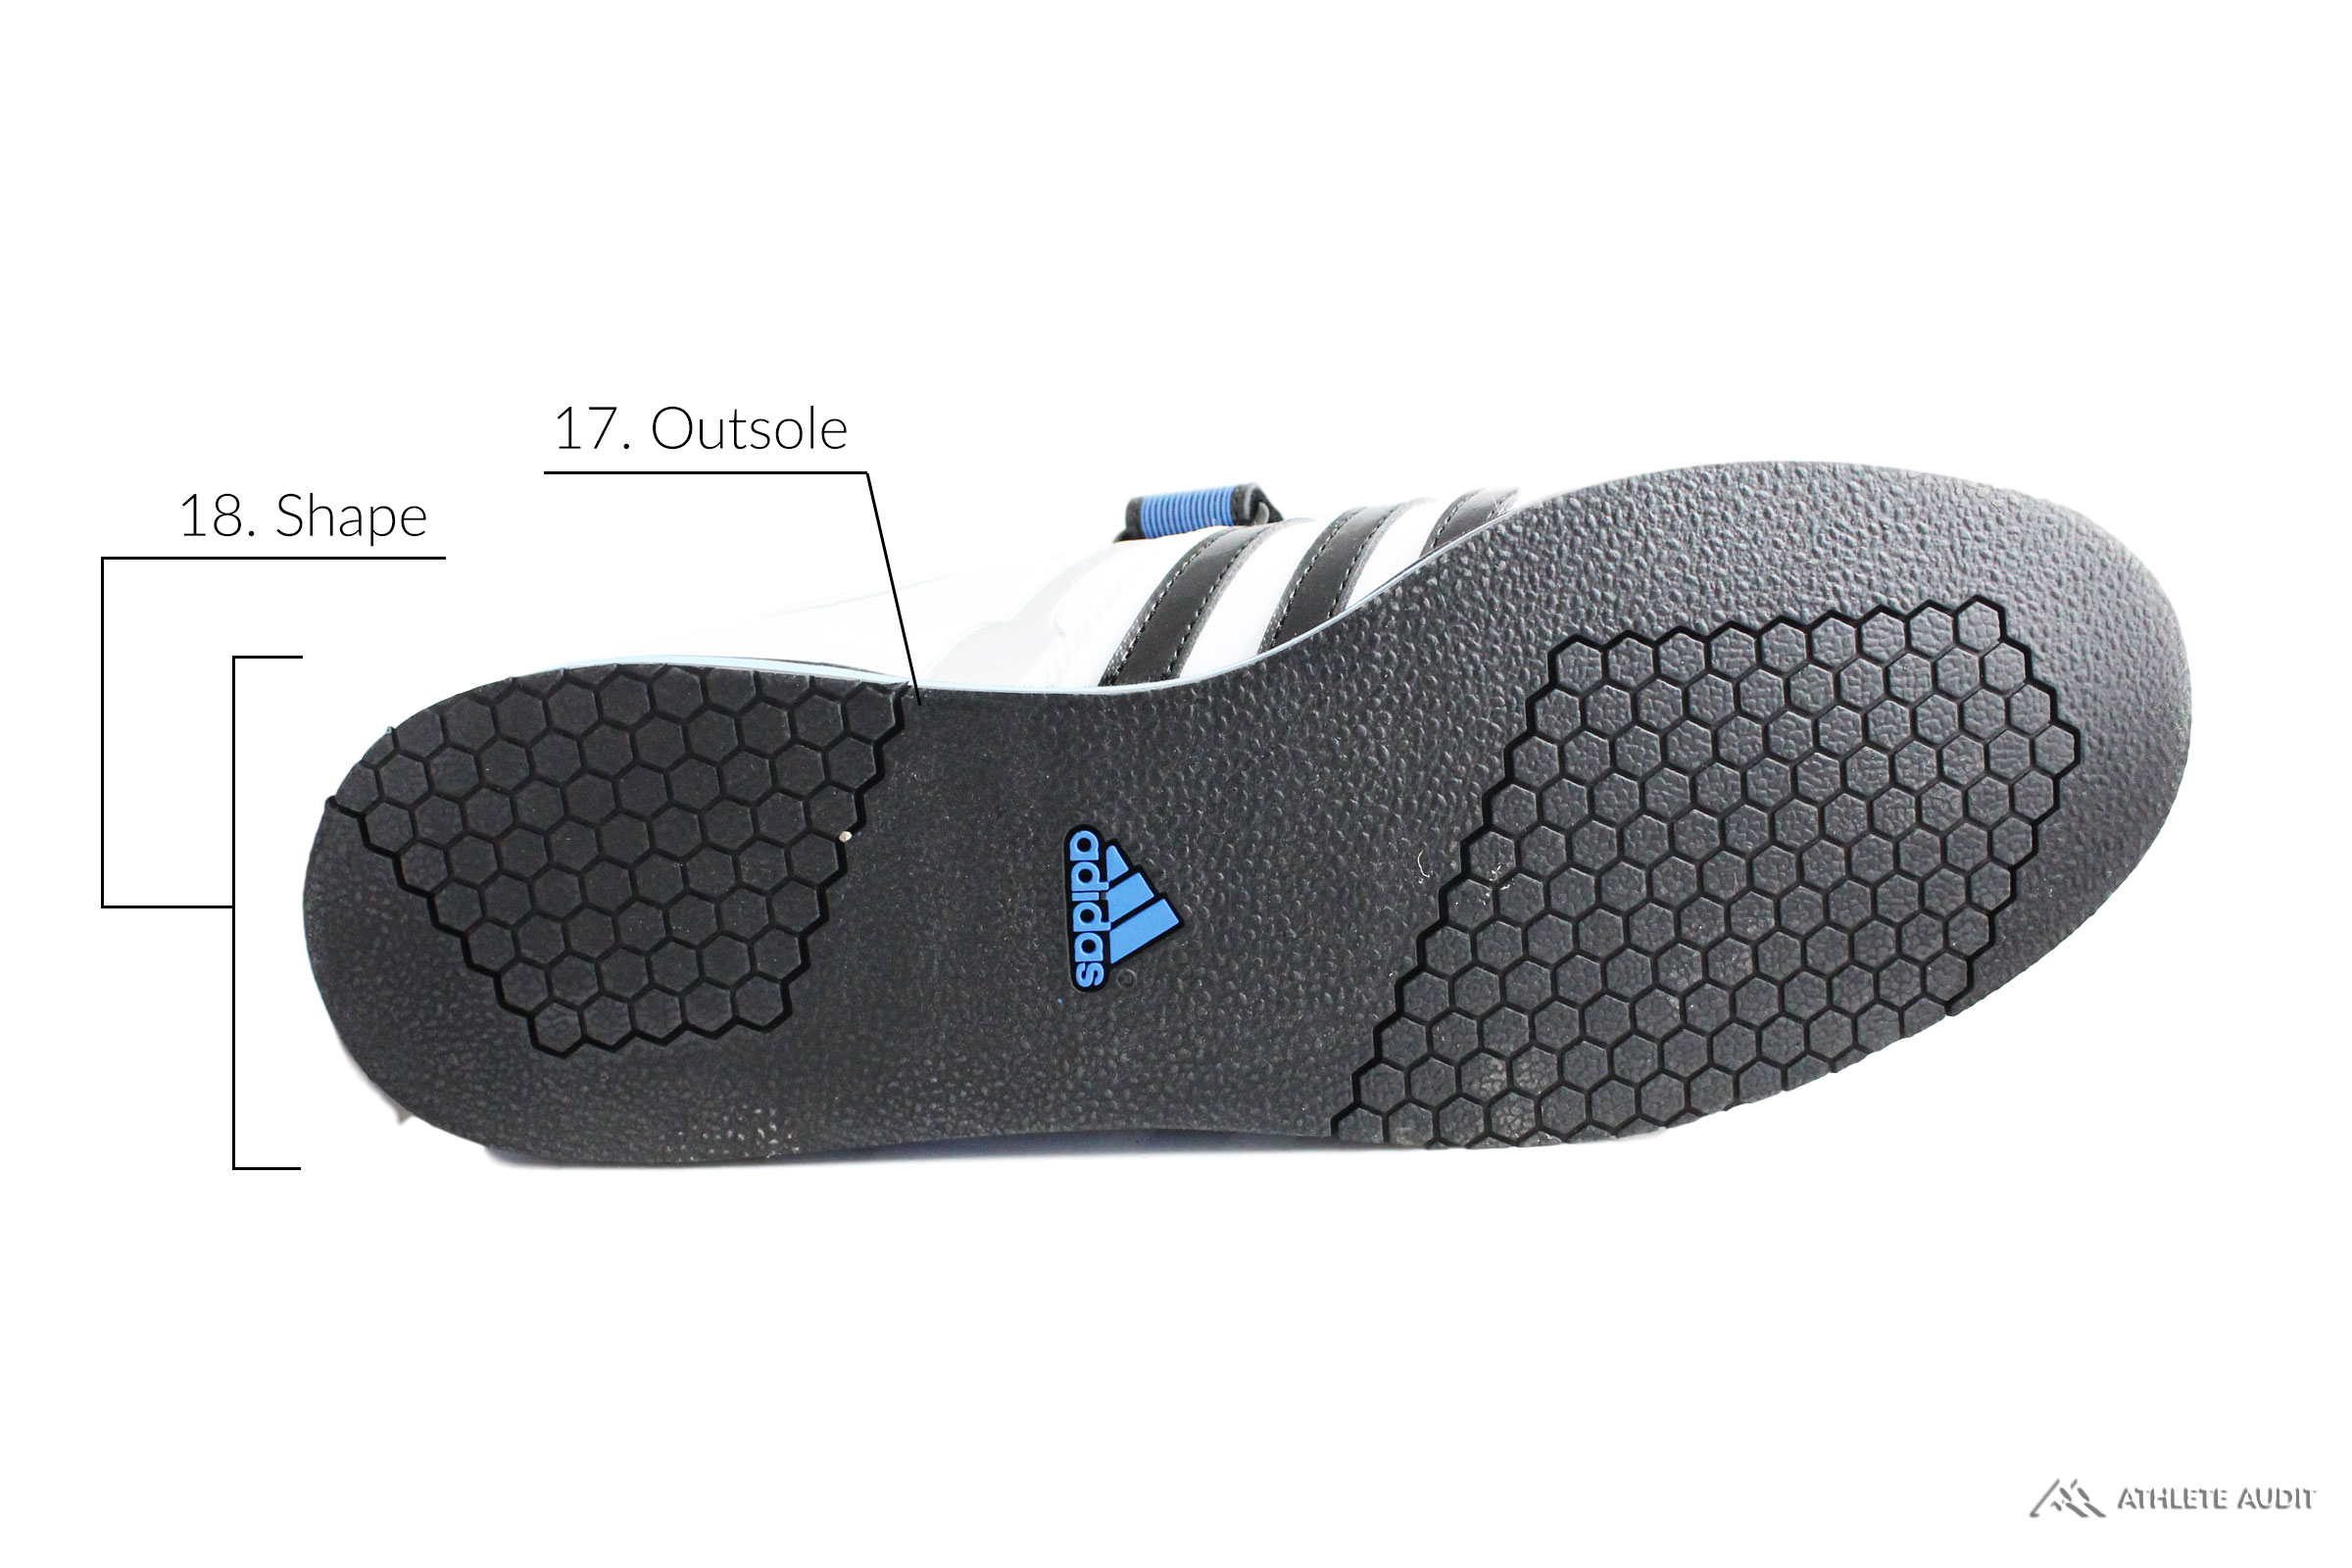 Parts of a Weightlifting Shoe - Outsole - Anatomy of an Athletic Shoe - Athlete Audit